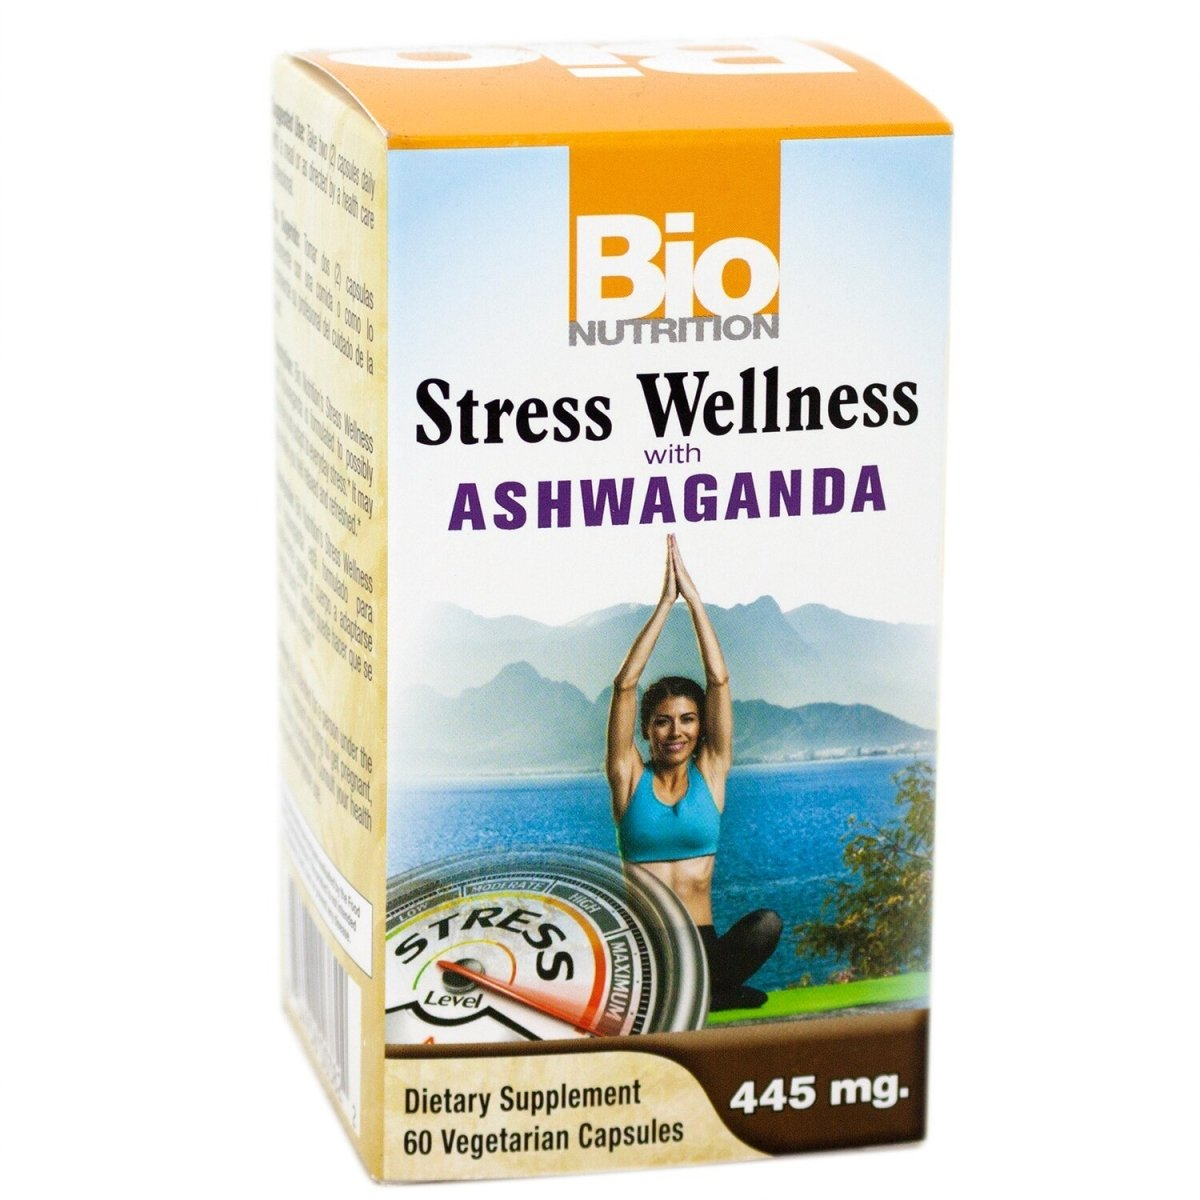 Stress Wellness with Ashwaganda - 445mg - 60 Vegetarian Capsules